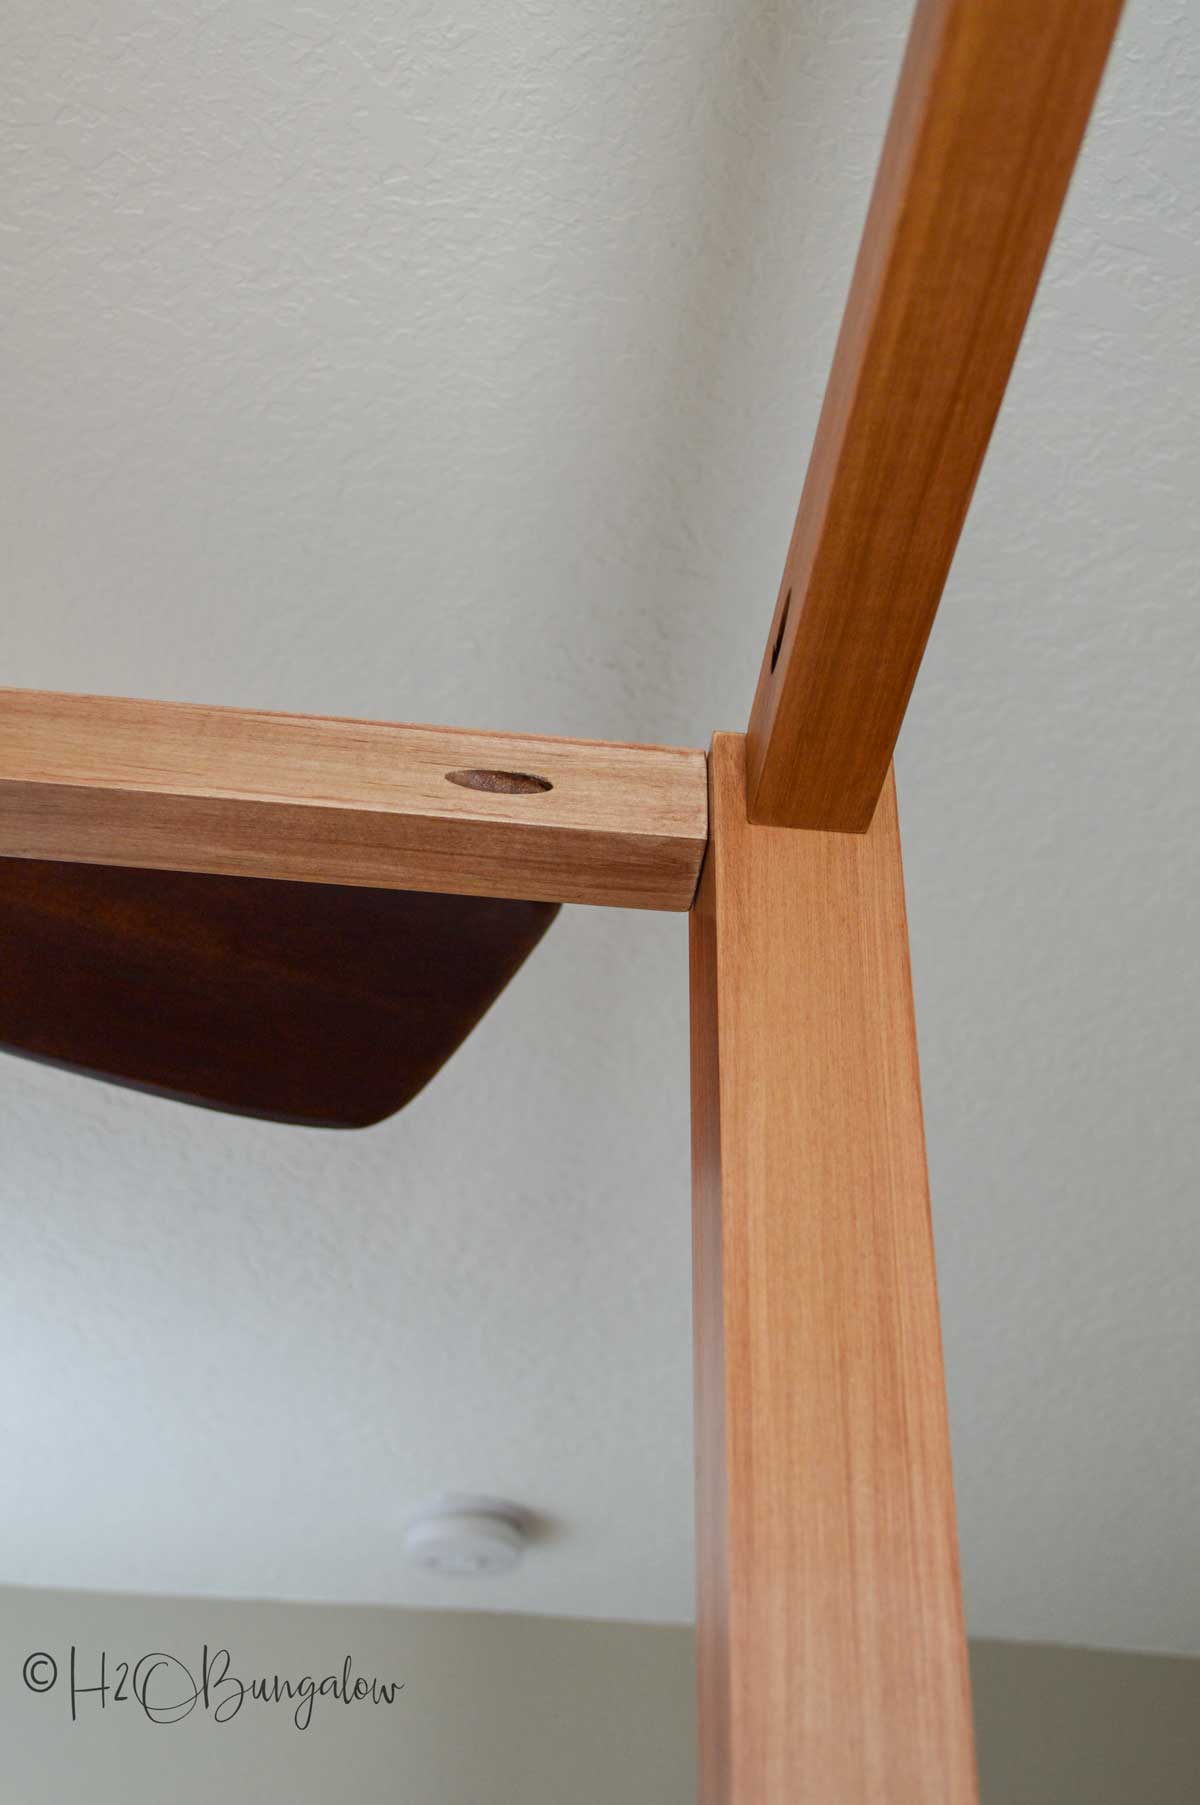 Top rails in maple on DIY queen bed frame project